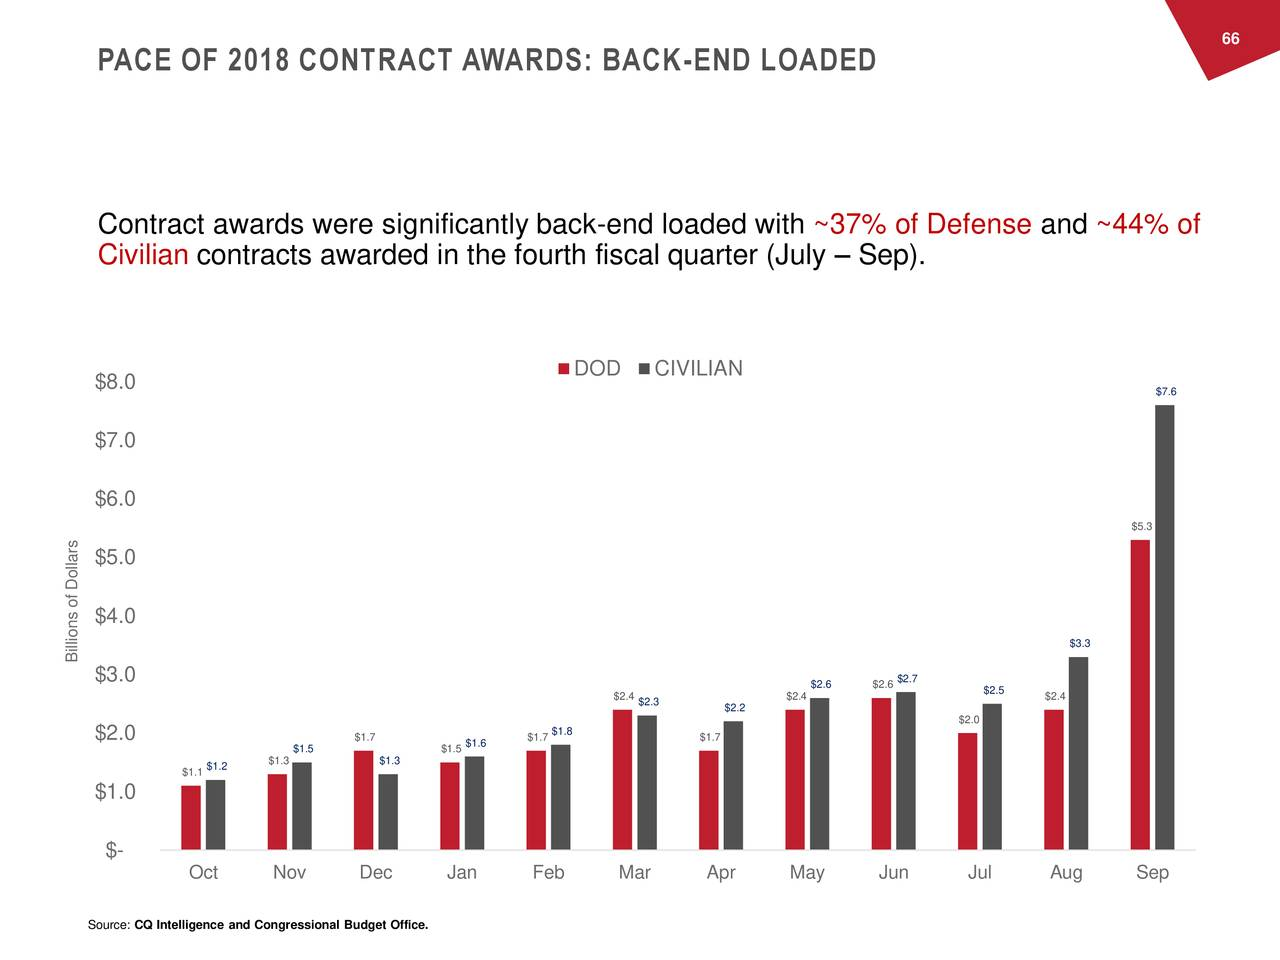 PACE OF 2018 CONTRACT AWARDS: BACK-END LOADED Contract awards were significantly back-end loaded with ~37% of Defense and ~44% of Civilian contracts awarded in the fourth fiscal quarter (July – Sep). DOD CIVILIAN $8.0 $7.6 $7.0 $6.0 $5.3 $5.0 $4.0 $3.3 Billions of Dollars $3.0 $2.7 $2.4 $2.42.6 $2.6 $2.5 $2.4 $2.3 $2.2 $2.0 $2.0 $1.7 $1.6 $1.71.8 $1.7 $1.5 $1.5 $1.1$1.2 $1.3 $1.3 $1.0 $- Oct Nov Dec Jan Feb Mar Apr May Jun Jul Aug Sep Source: CQ Intelligence and Congressional Budget Office.